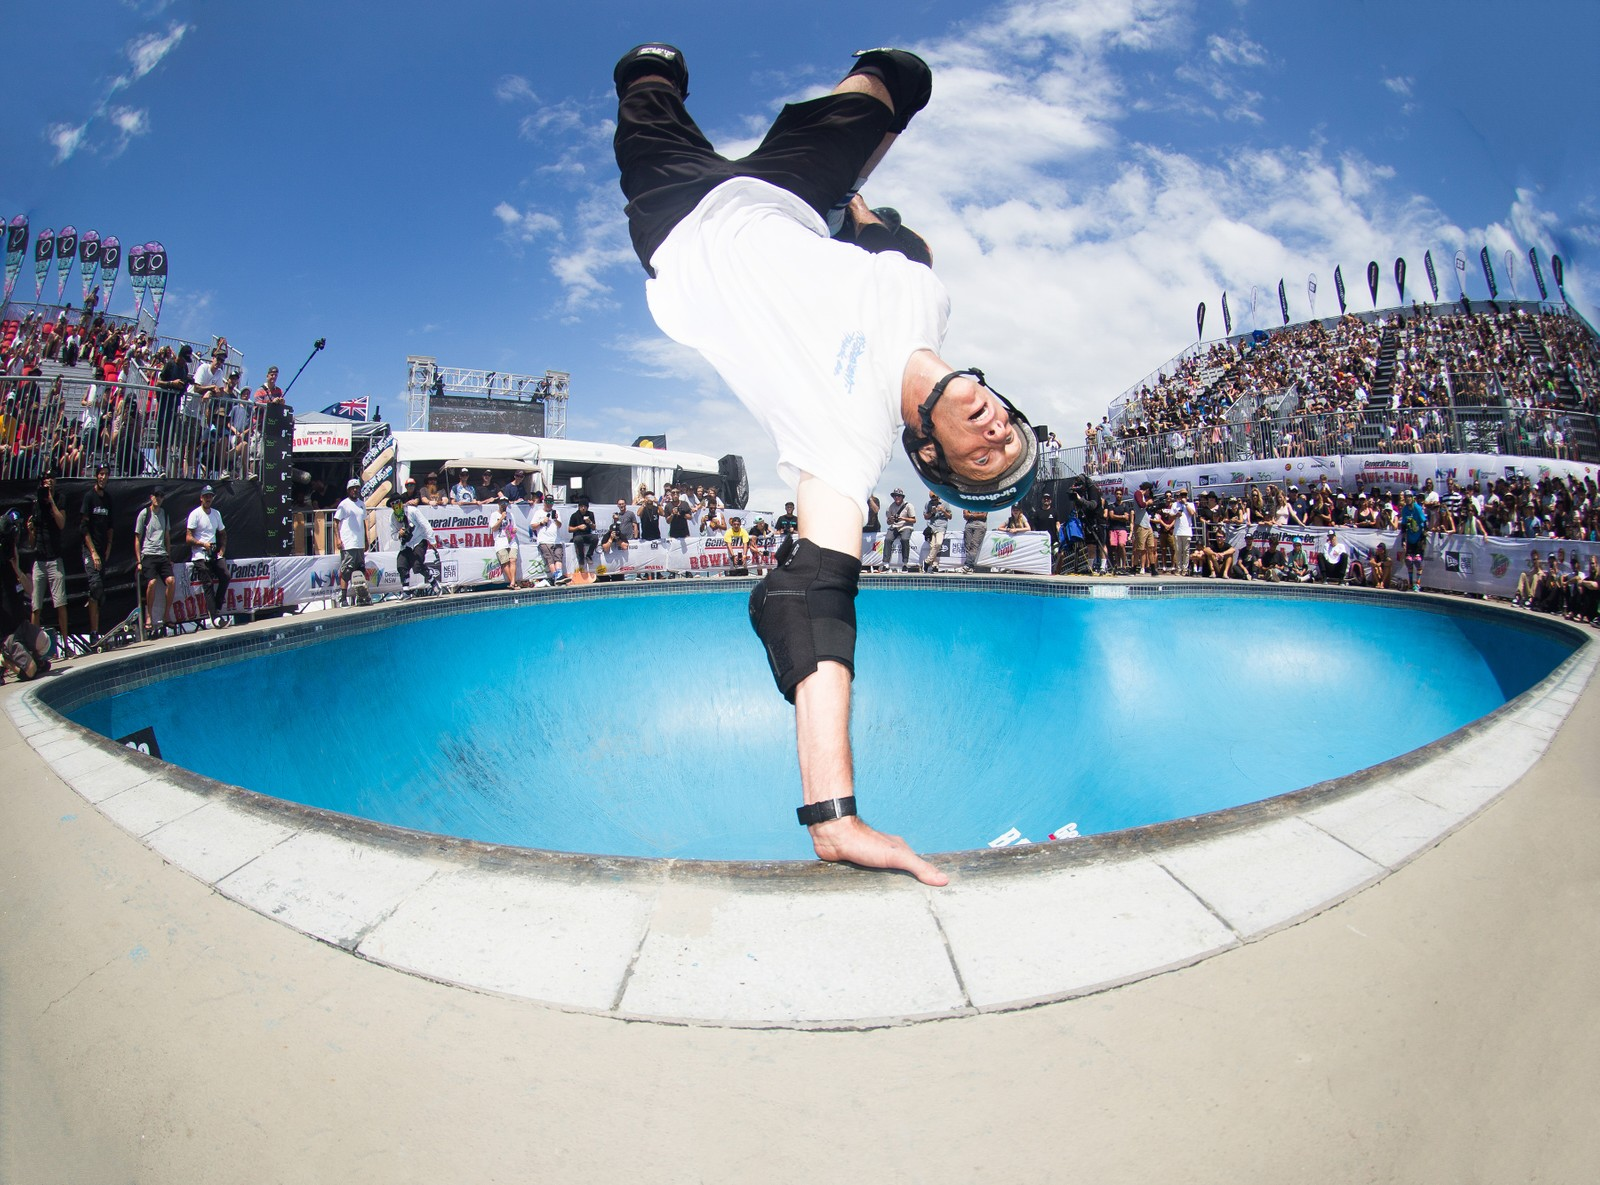 TONY HAWK TO BE STAR COMMENTATOR FOR THIS YEAR'S VANS PARK SERIES